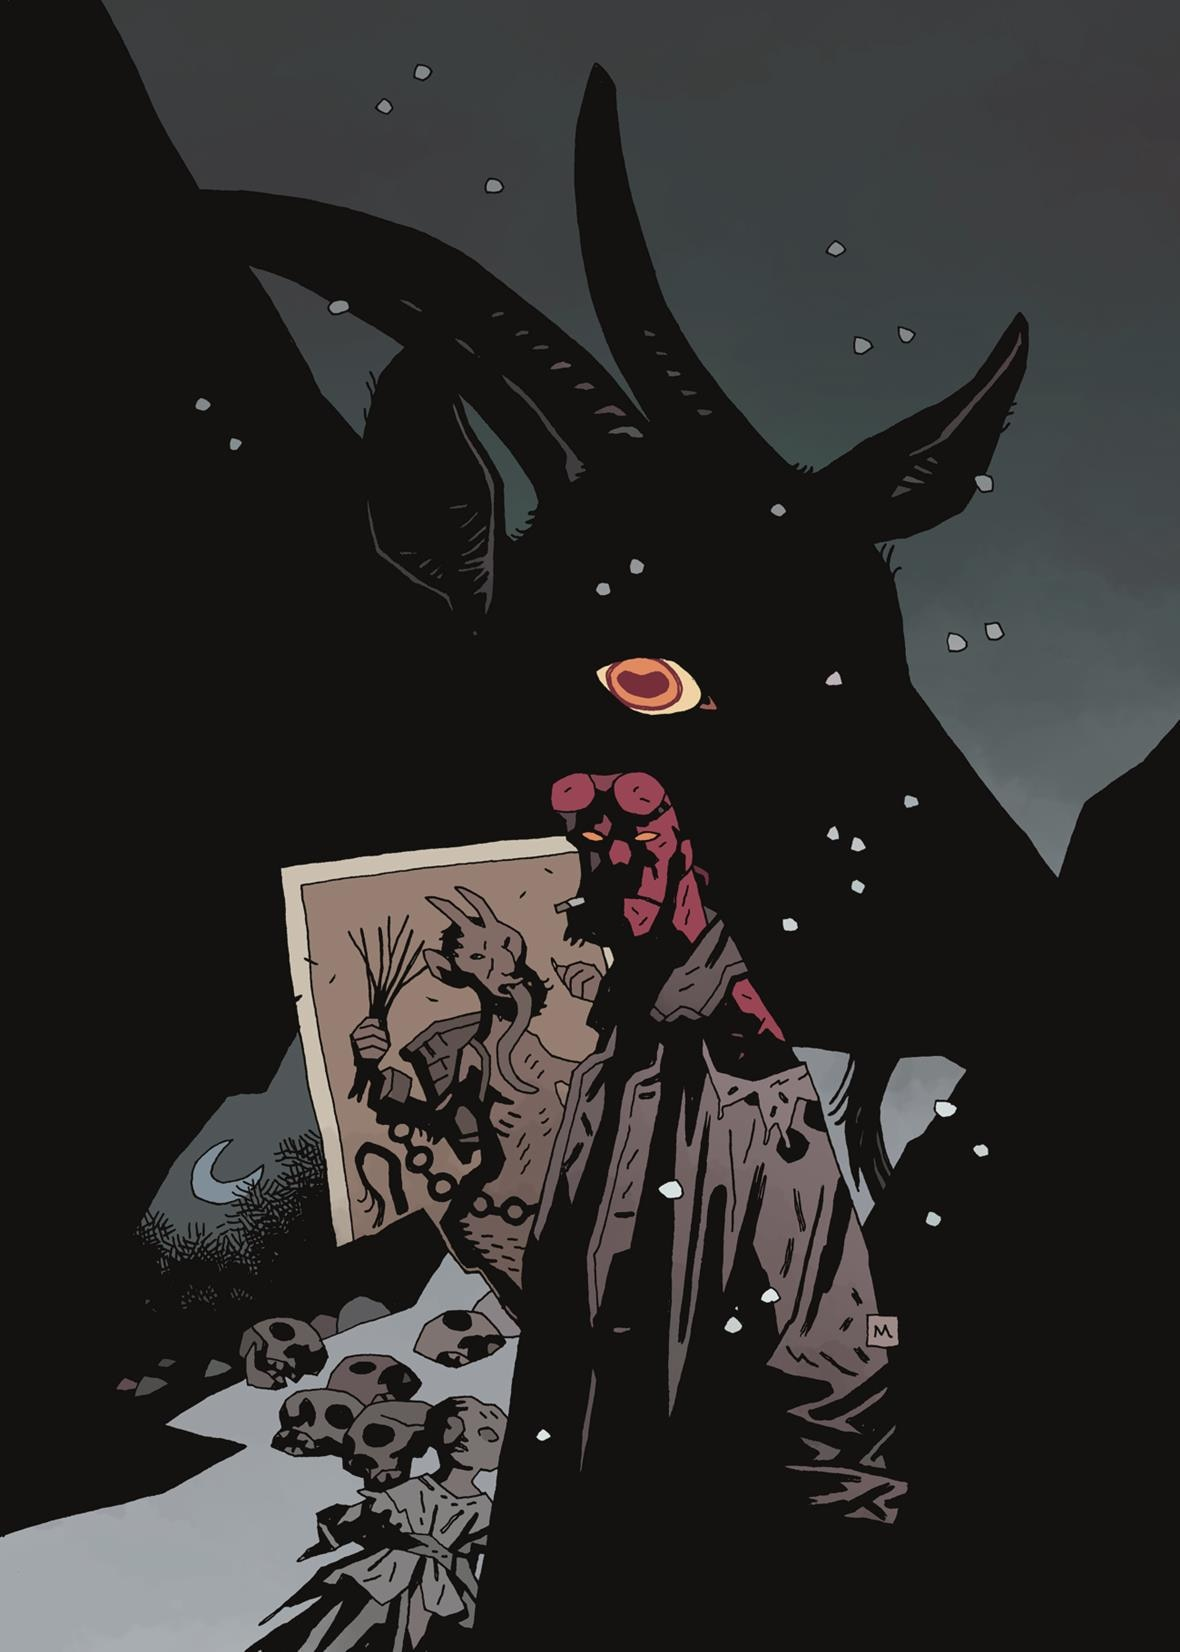 Hellboy Krampusnacht - Exclusive Preview of Mike Mignola and Adam Hughes' Hellboy: Krampusnacht